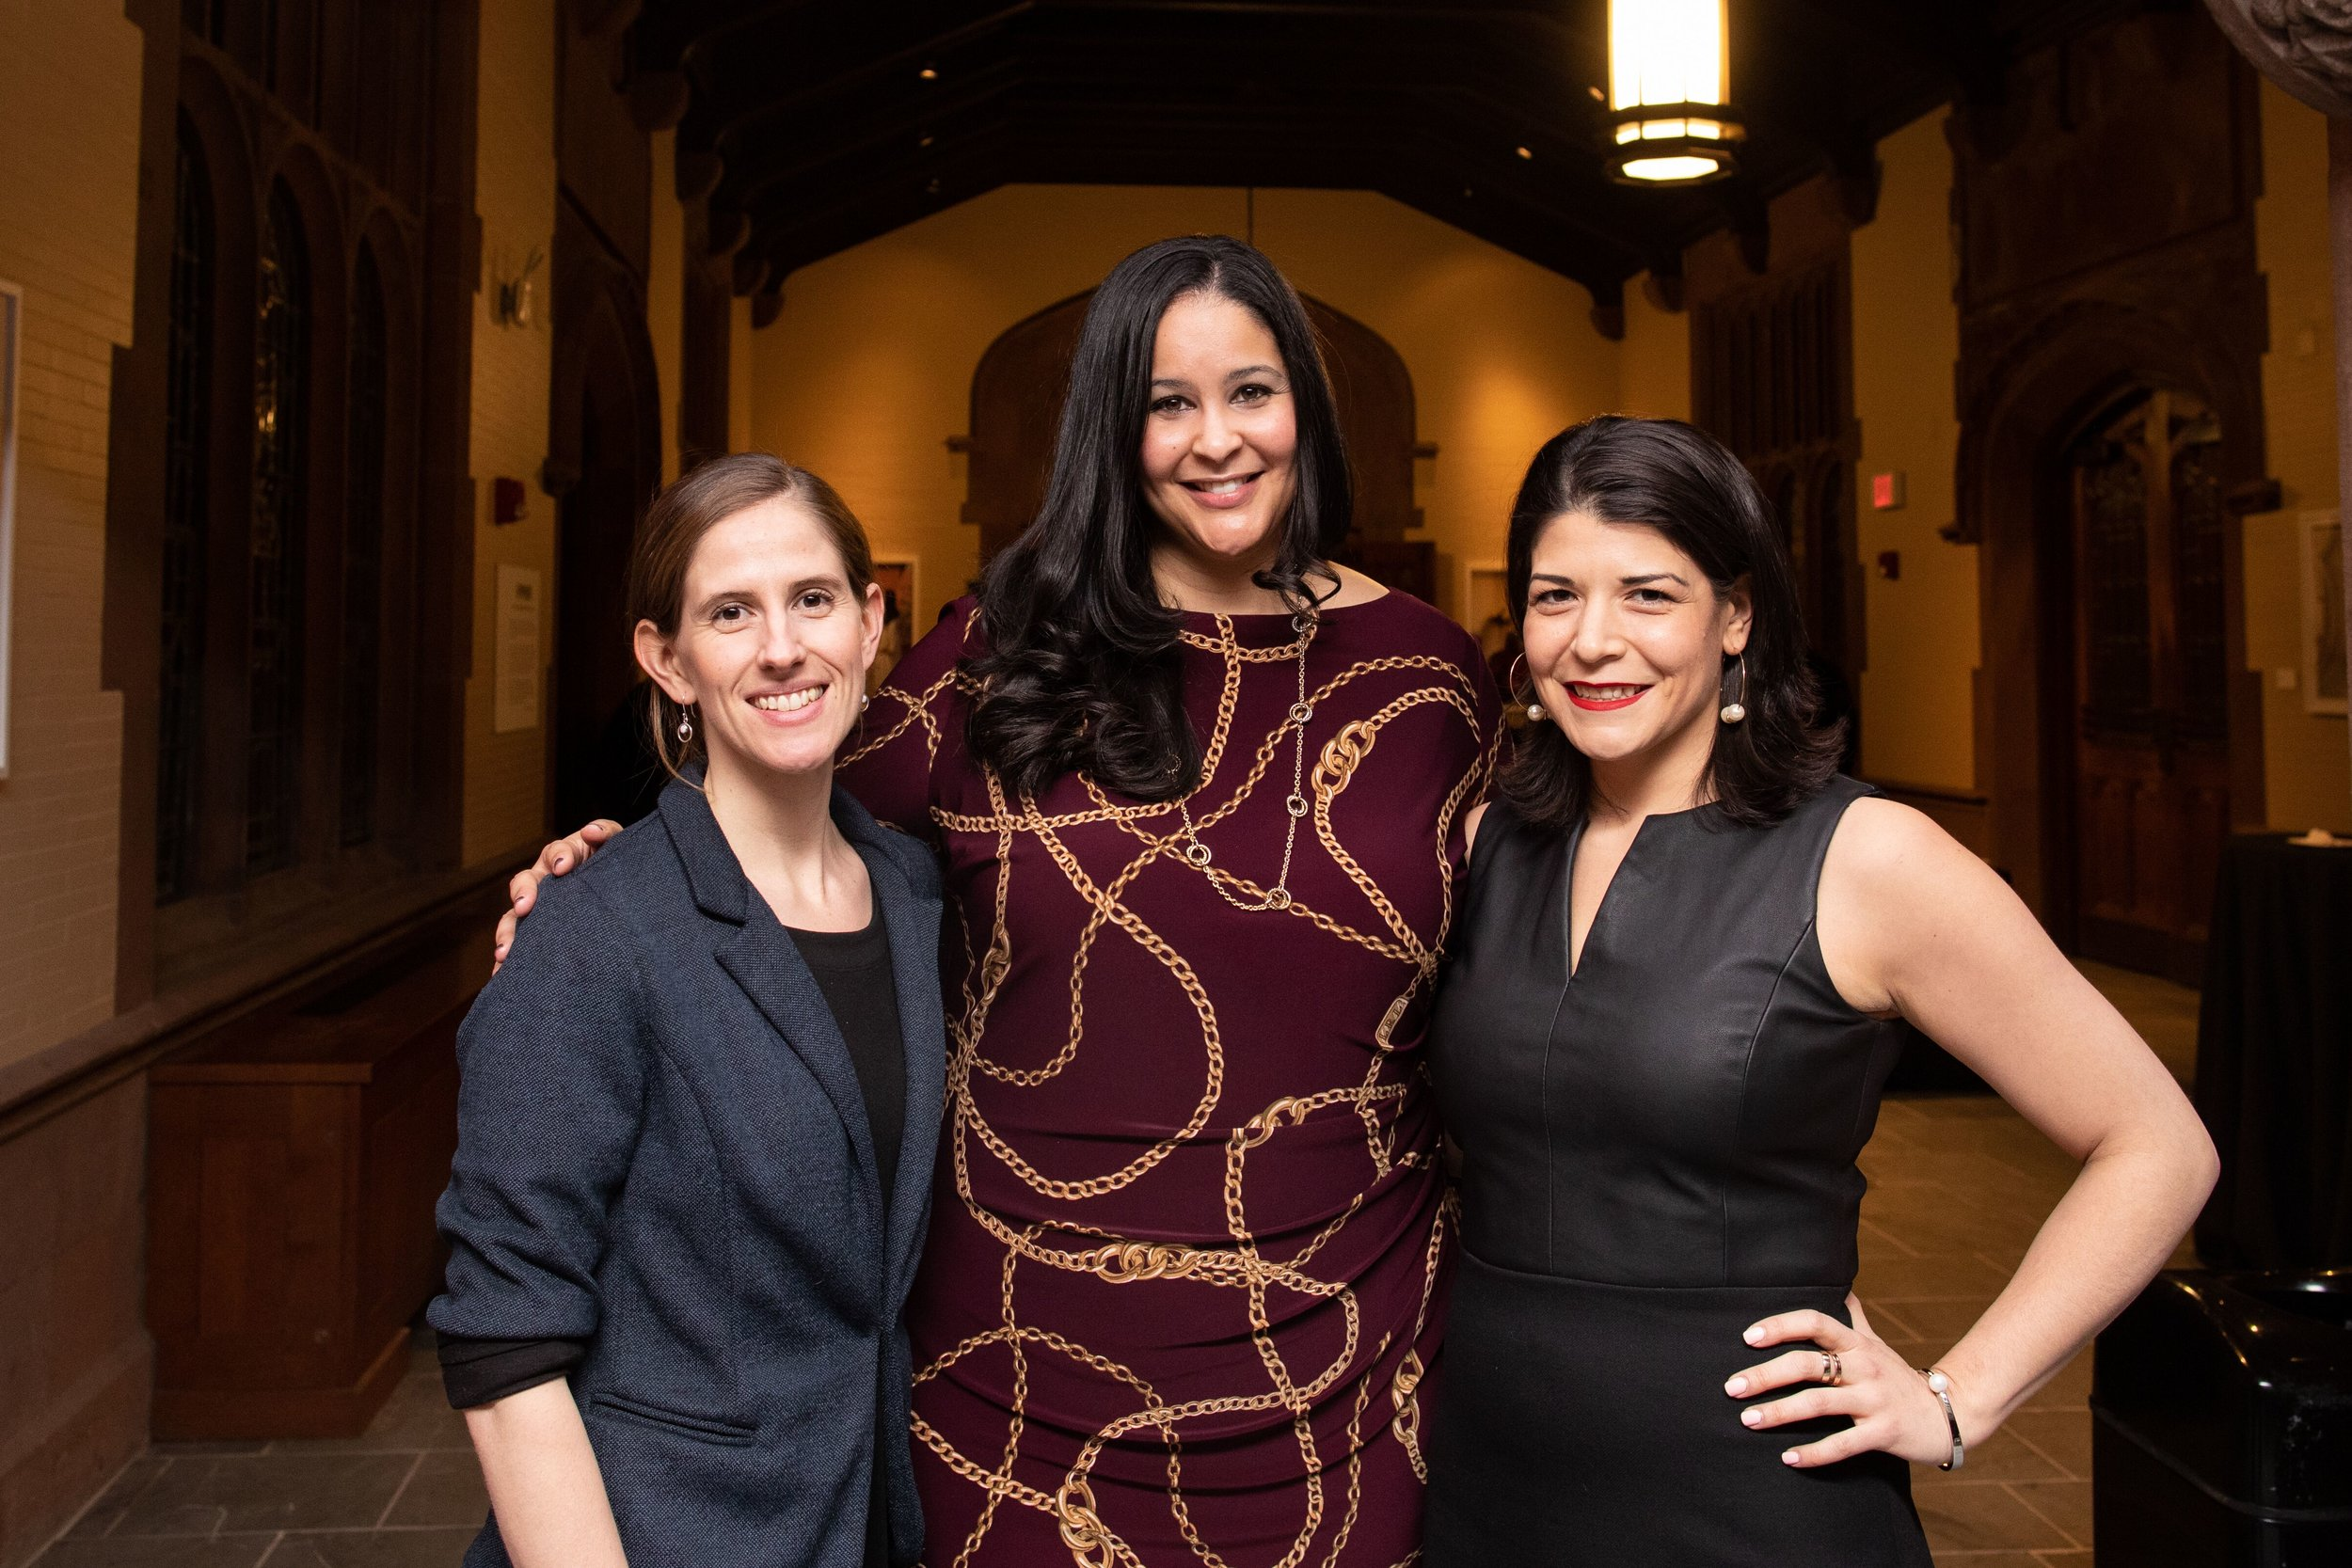 Founding Executive Committee - (from left to right)Devon Moore, University of Chicago (Director, Center for College Student Success)Kourtney Cockrell, Northwestern University (Director, Student Enrichment Services)Khristina Gonzalez, Princeton University (Associate Dean, Director of Programs for Access and Inclusion)